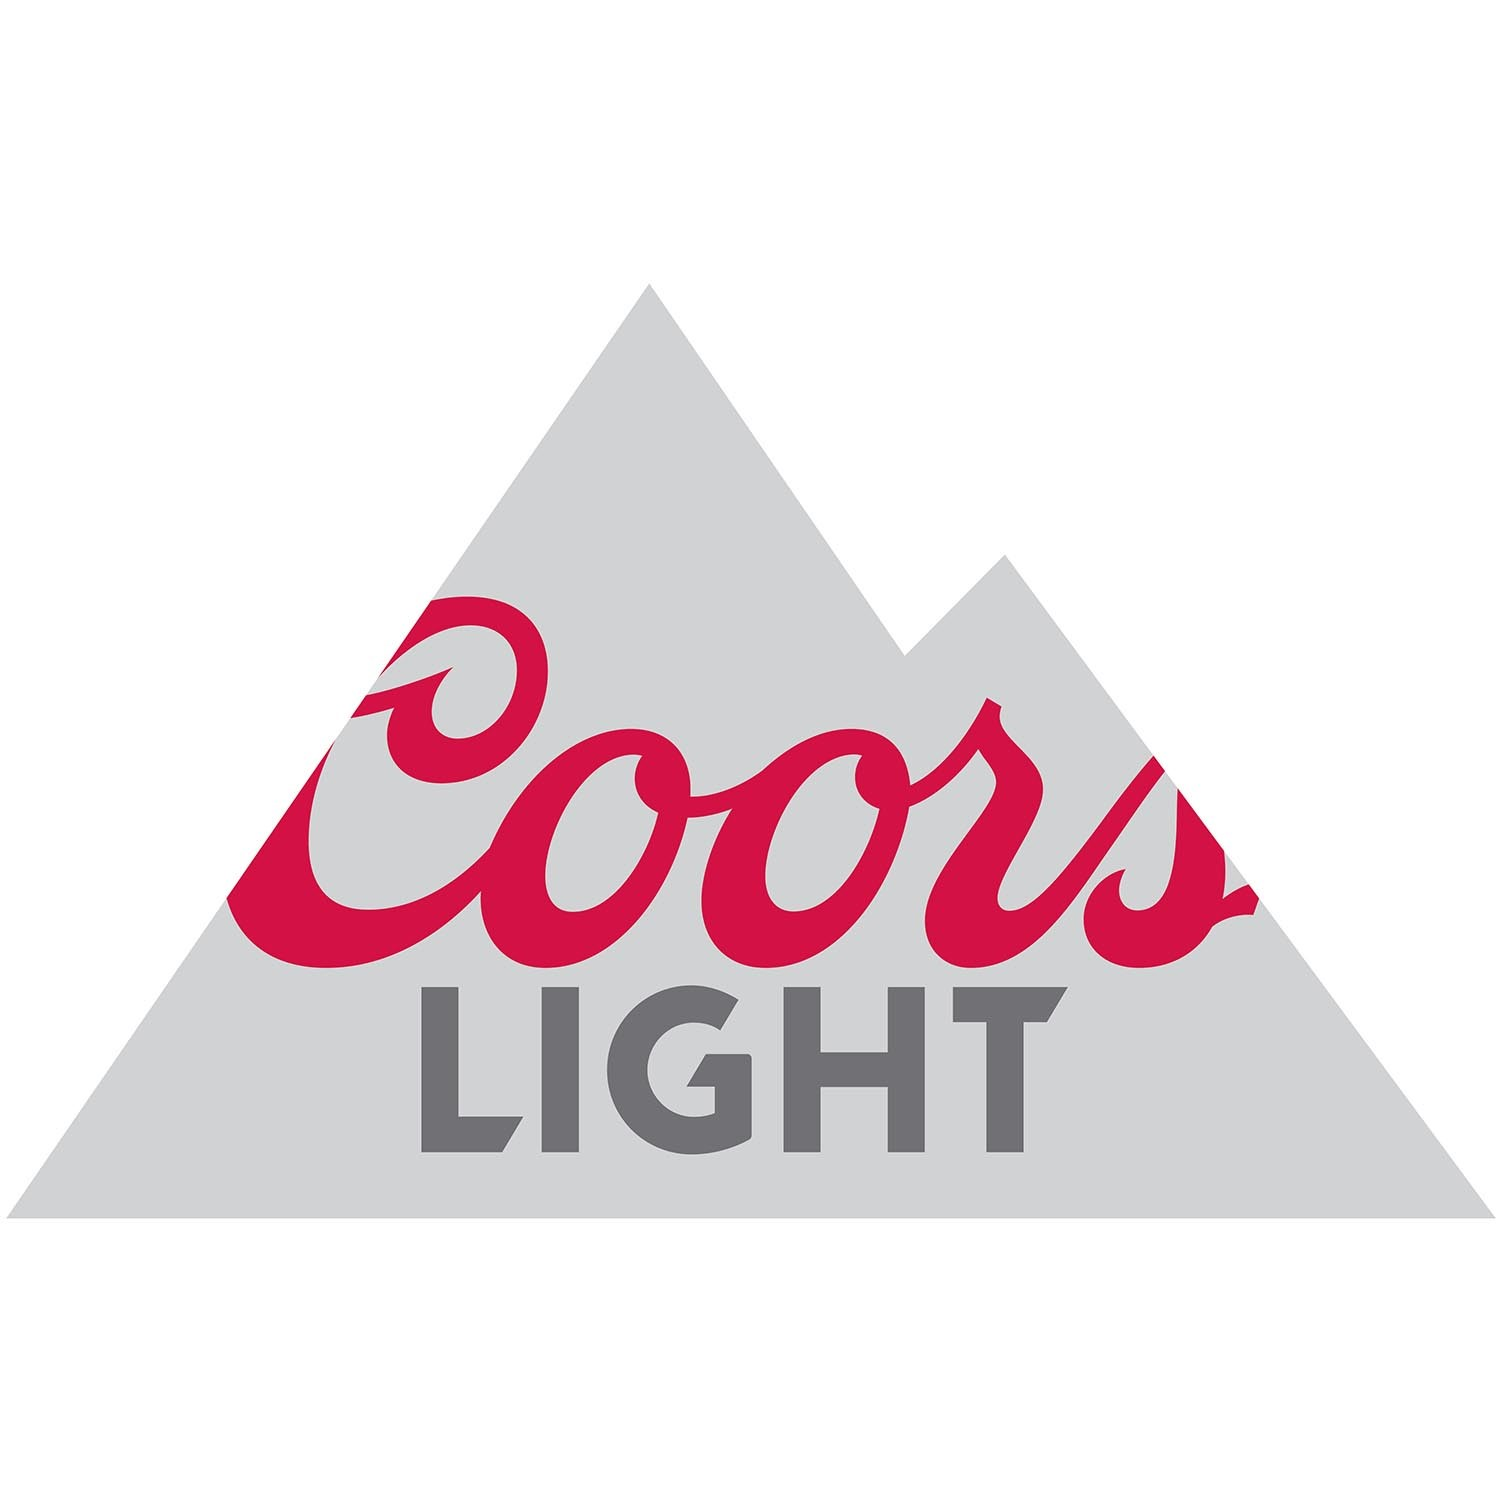 https://www.legacybeverage.com/wp-content/uploads/2020/05/coors-light-logo2.jpg